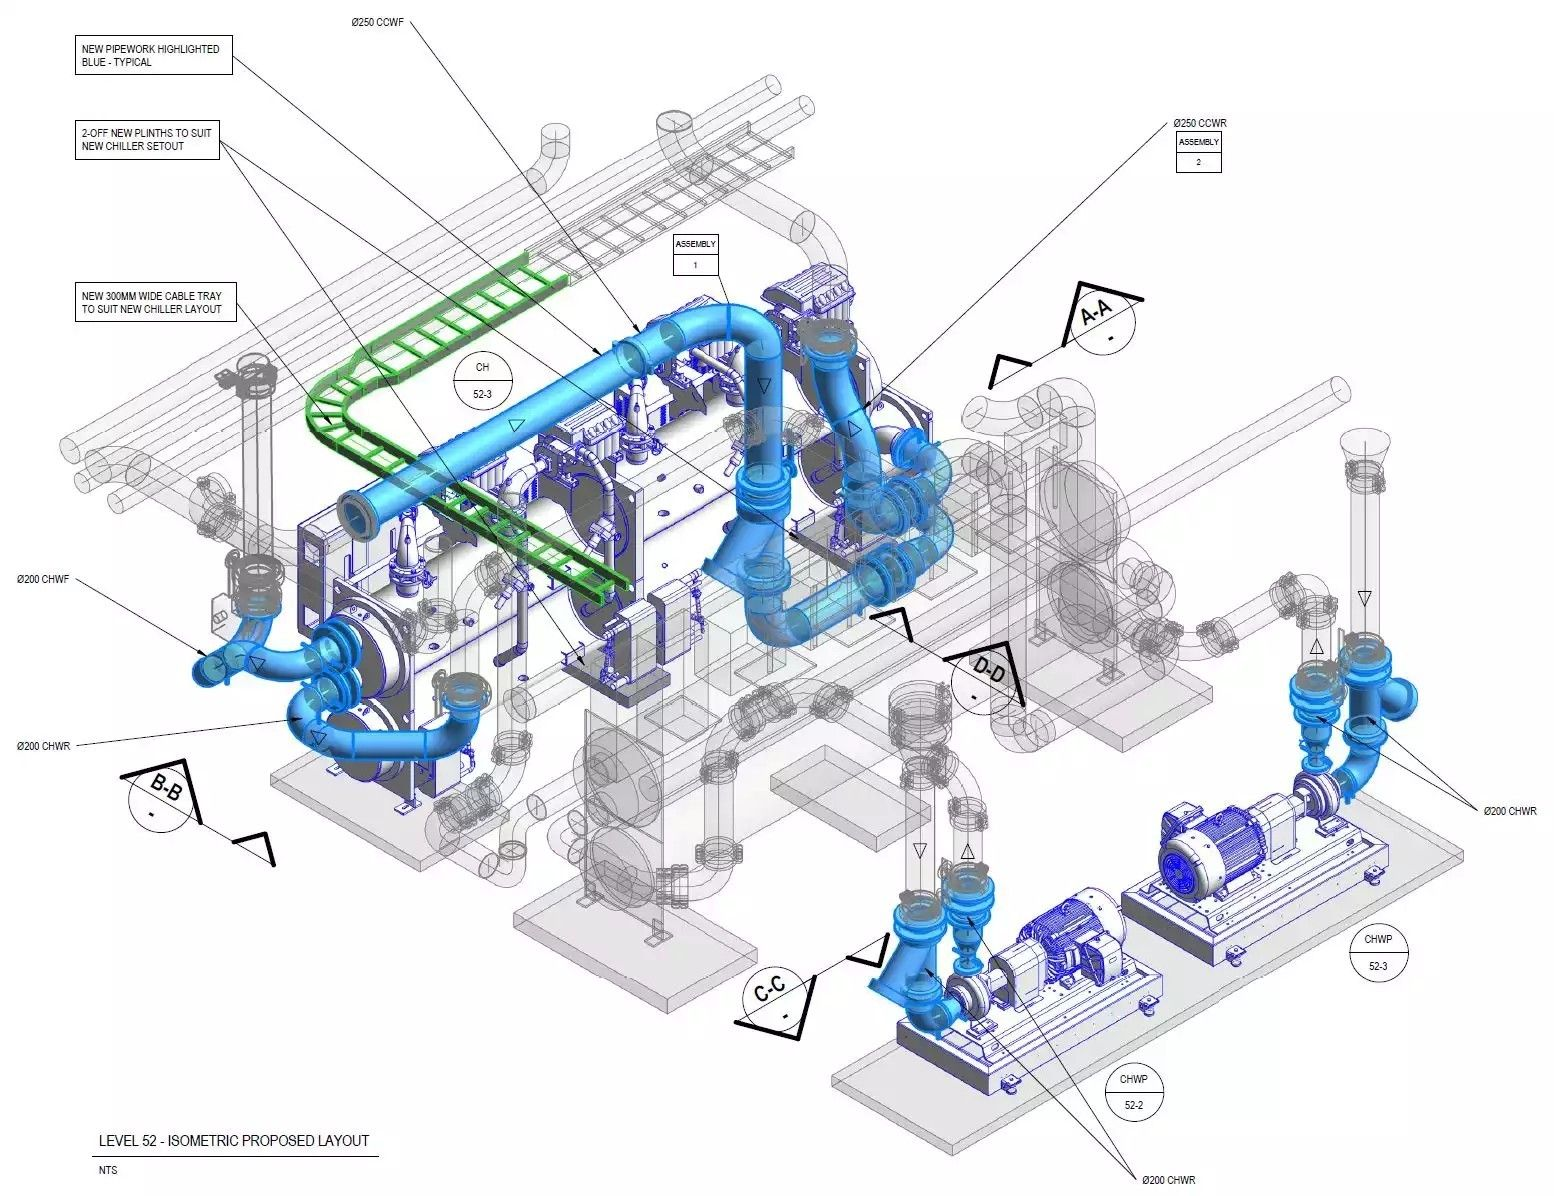 piping and instrumentation diagram building information modeling room with plants revit boiler [ 1554 x 1196 Pixel ]